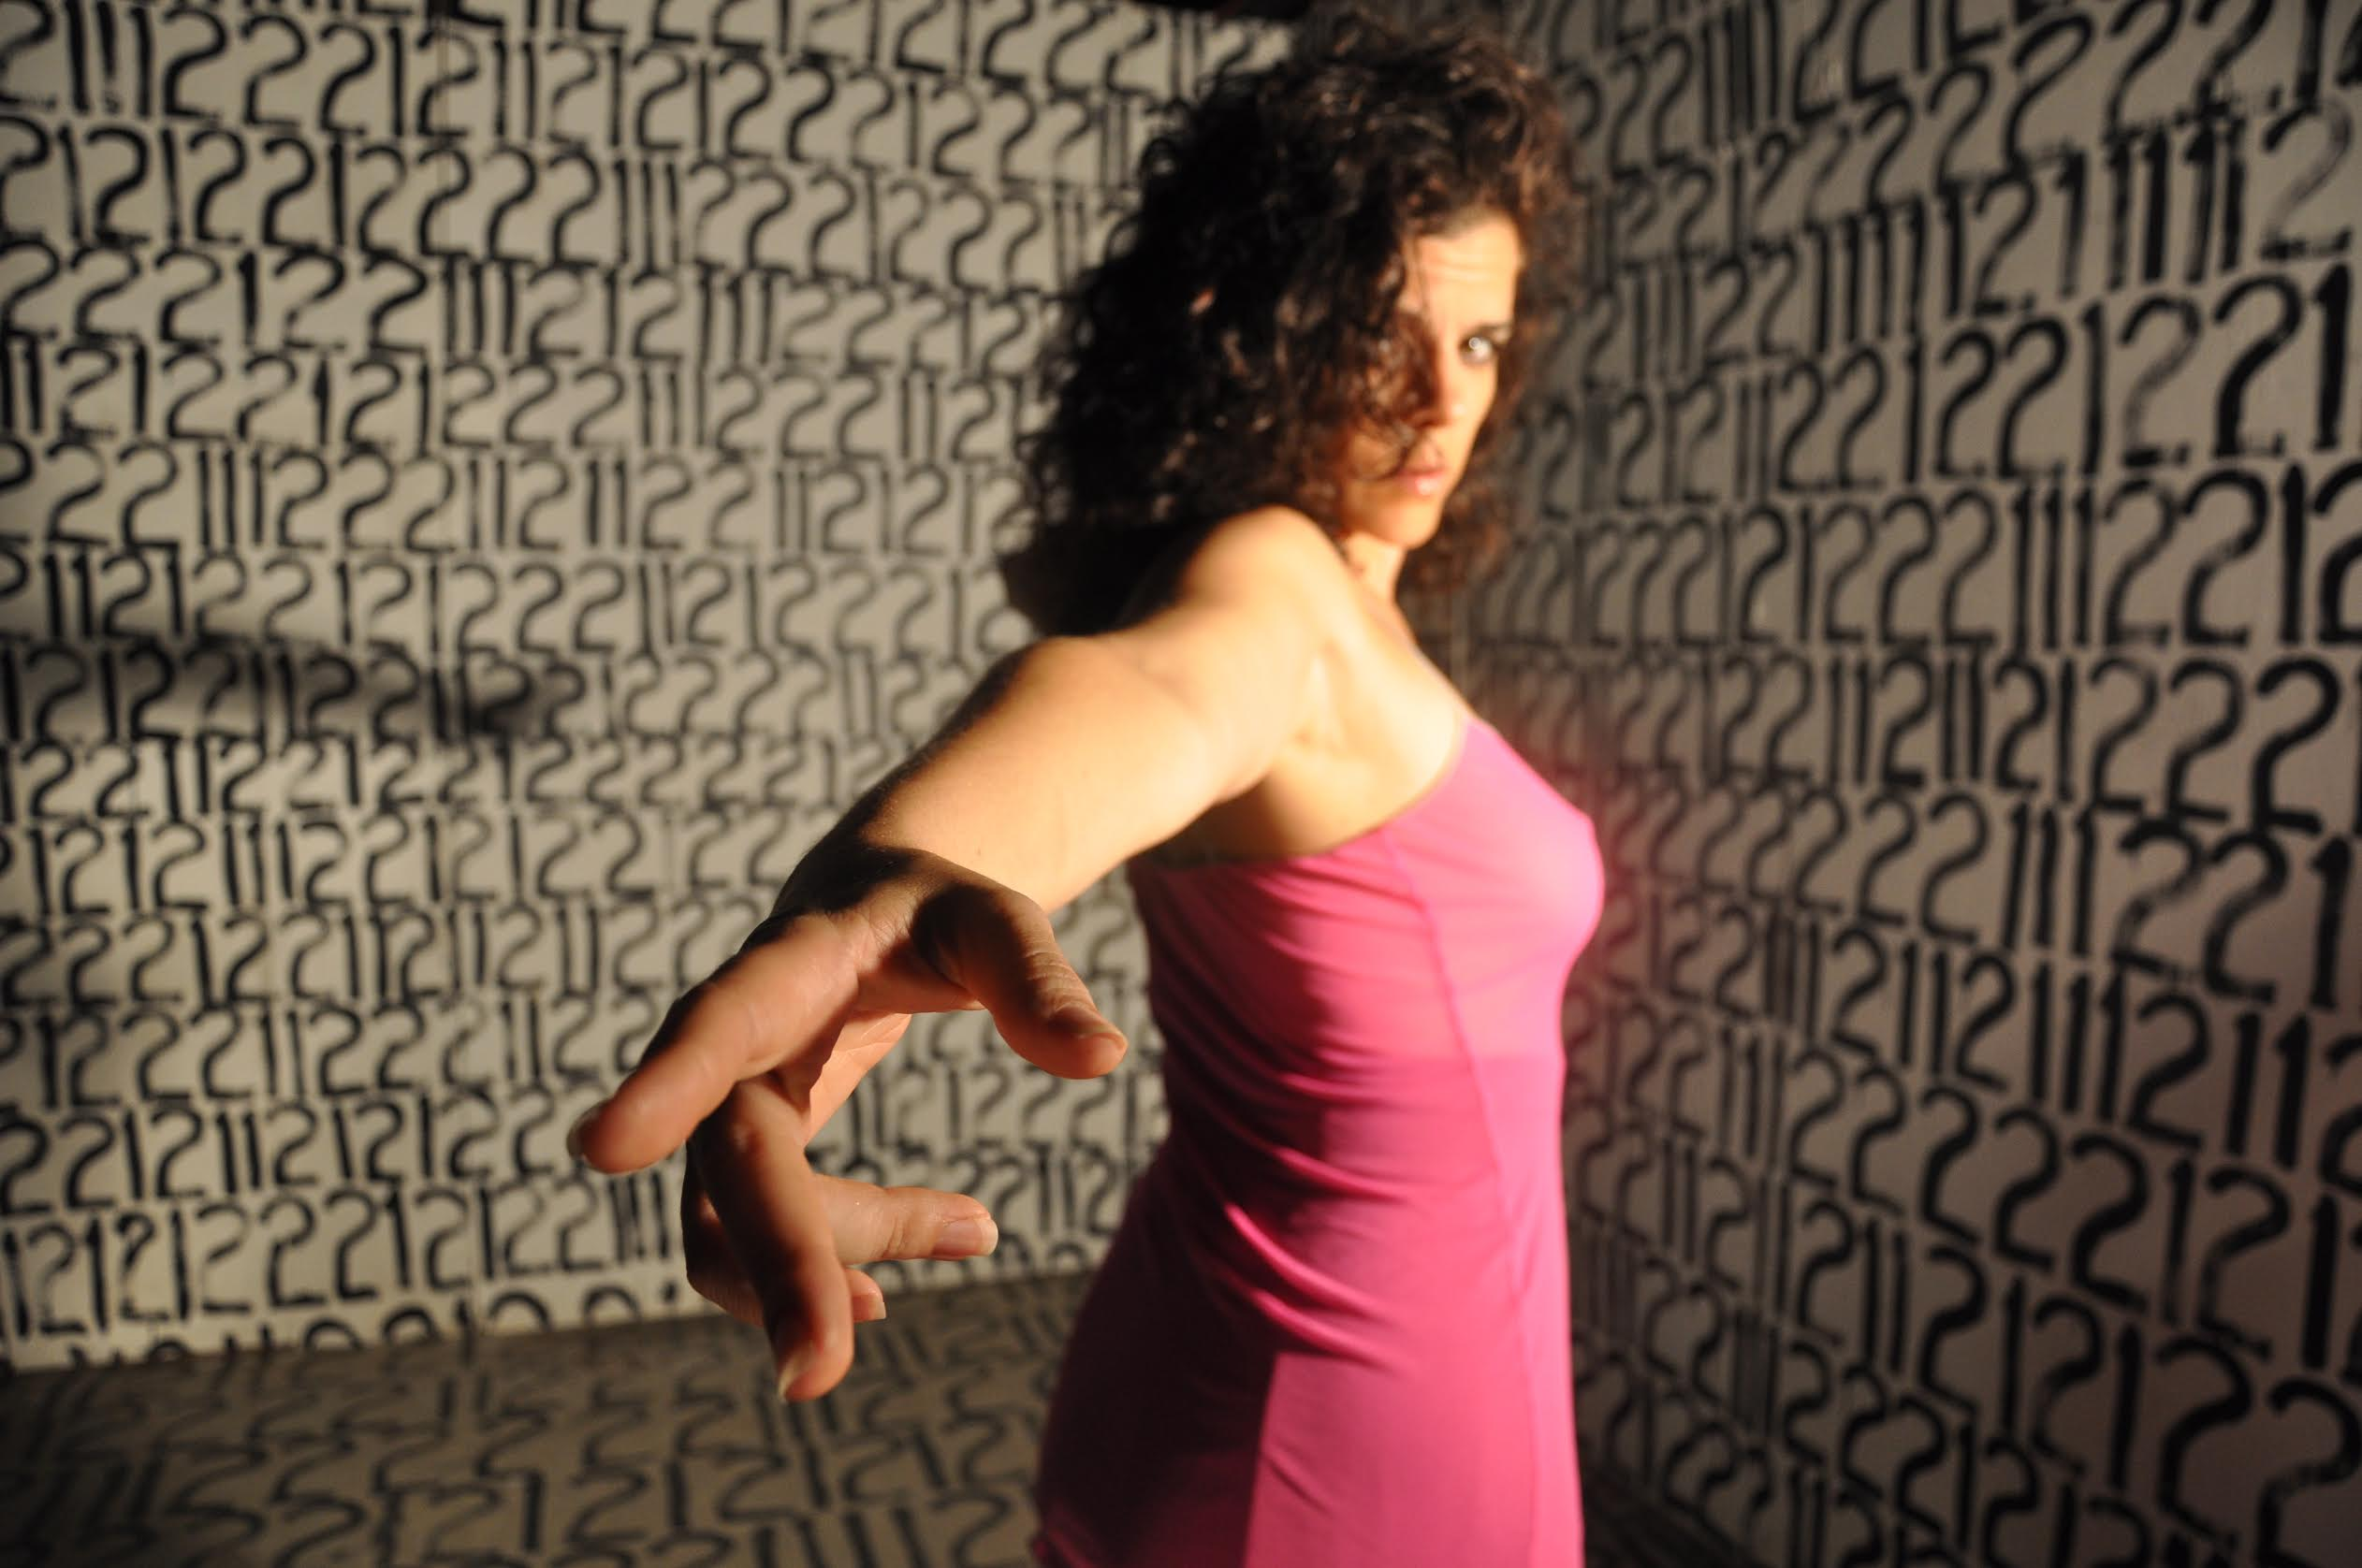 Miami dancer Niurca Márquez to fuse local history and flamenco in Knight-funded performance